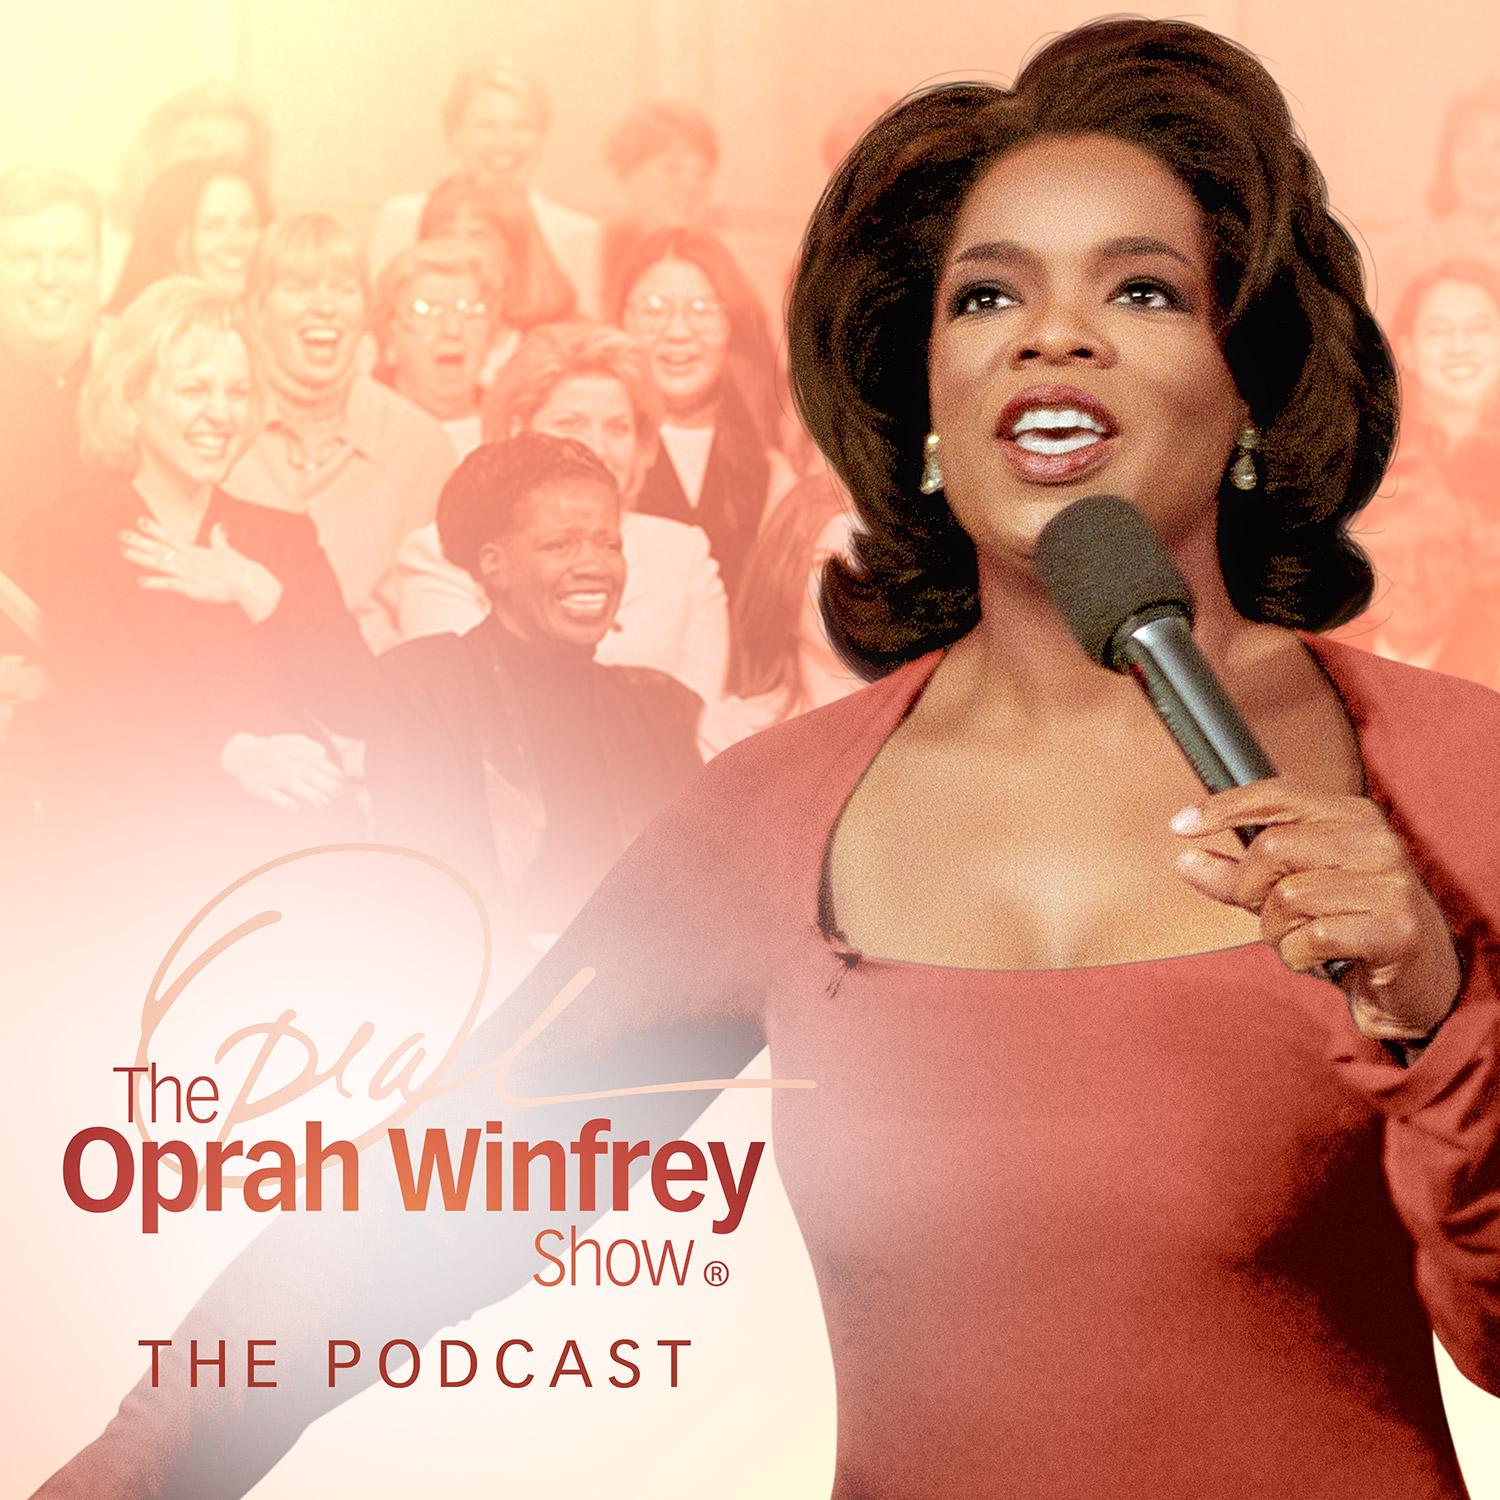 'The Oprah Winfrey Show' to Launch as a Podcast